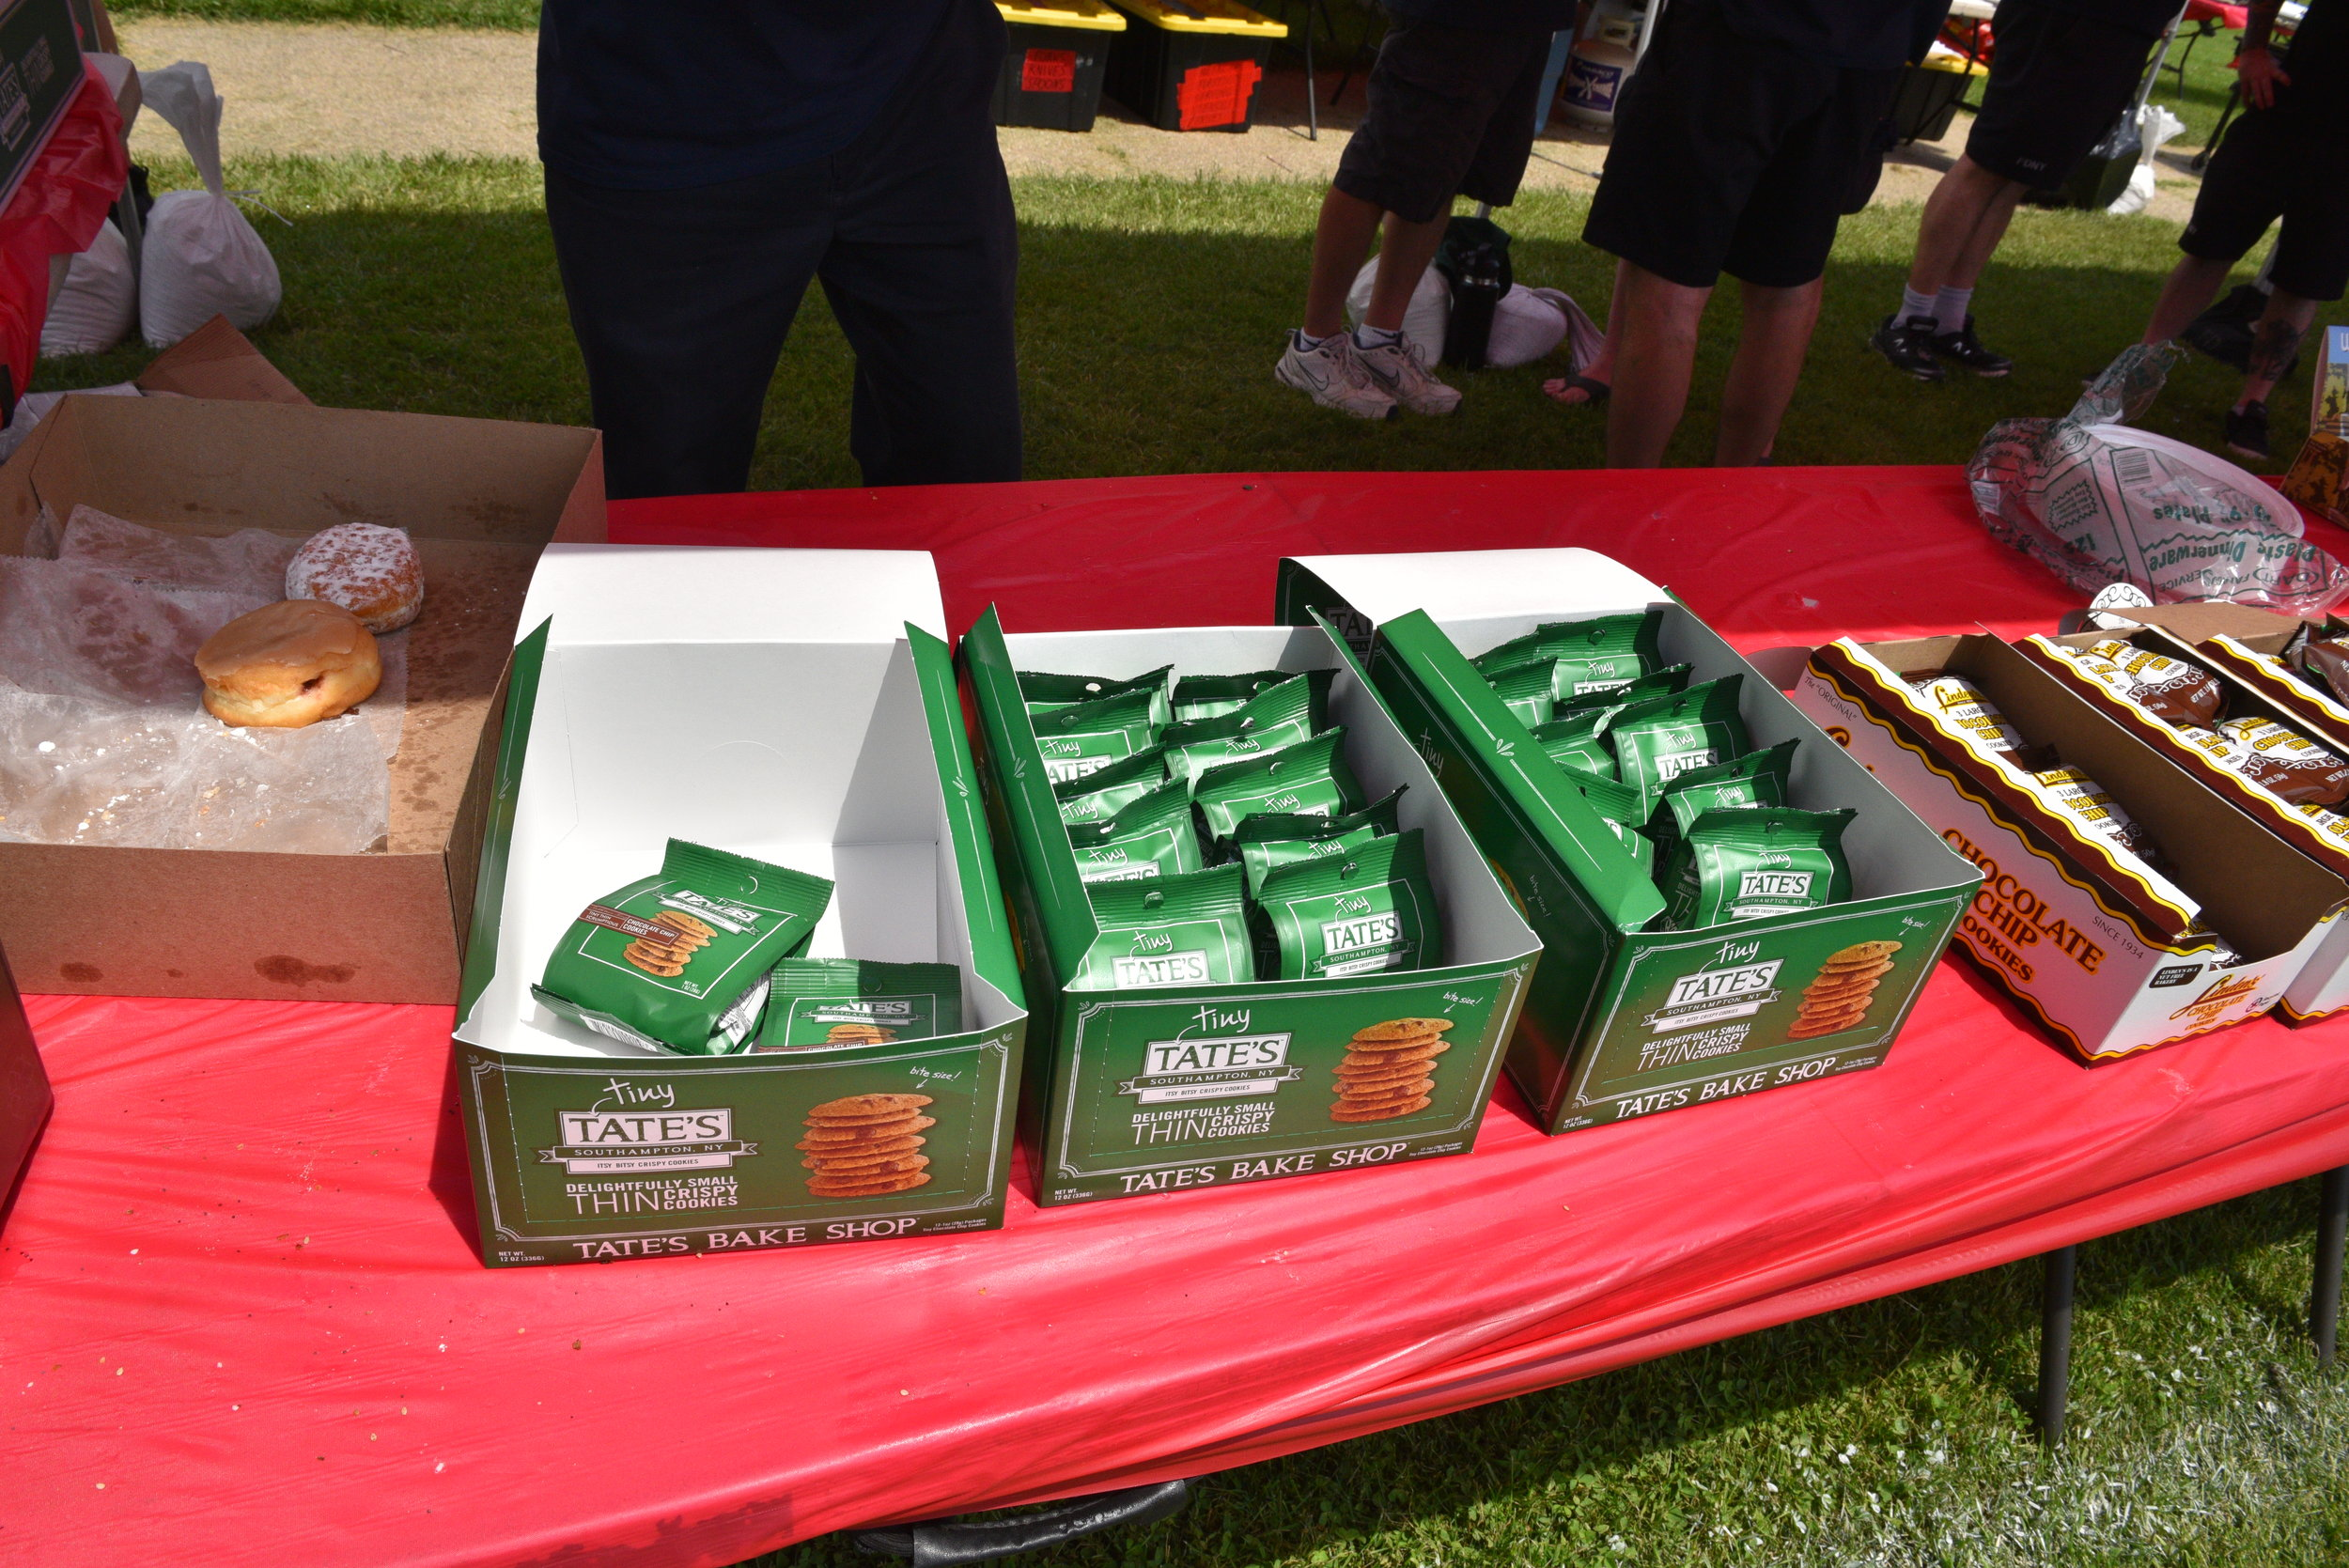 20180609-Fired-Up-Cure-Picnic-KC-010.JPG